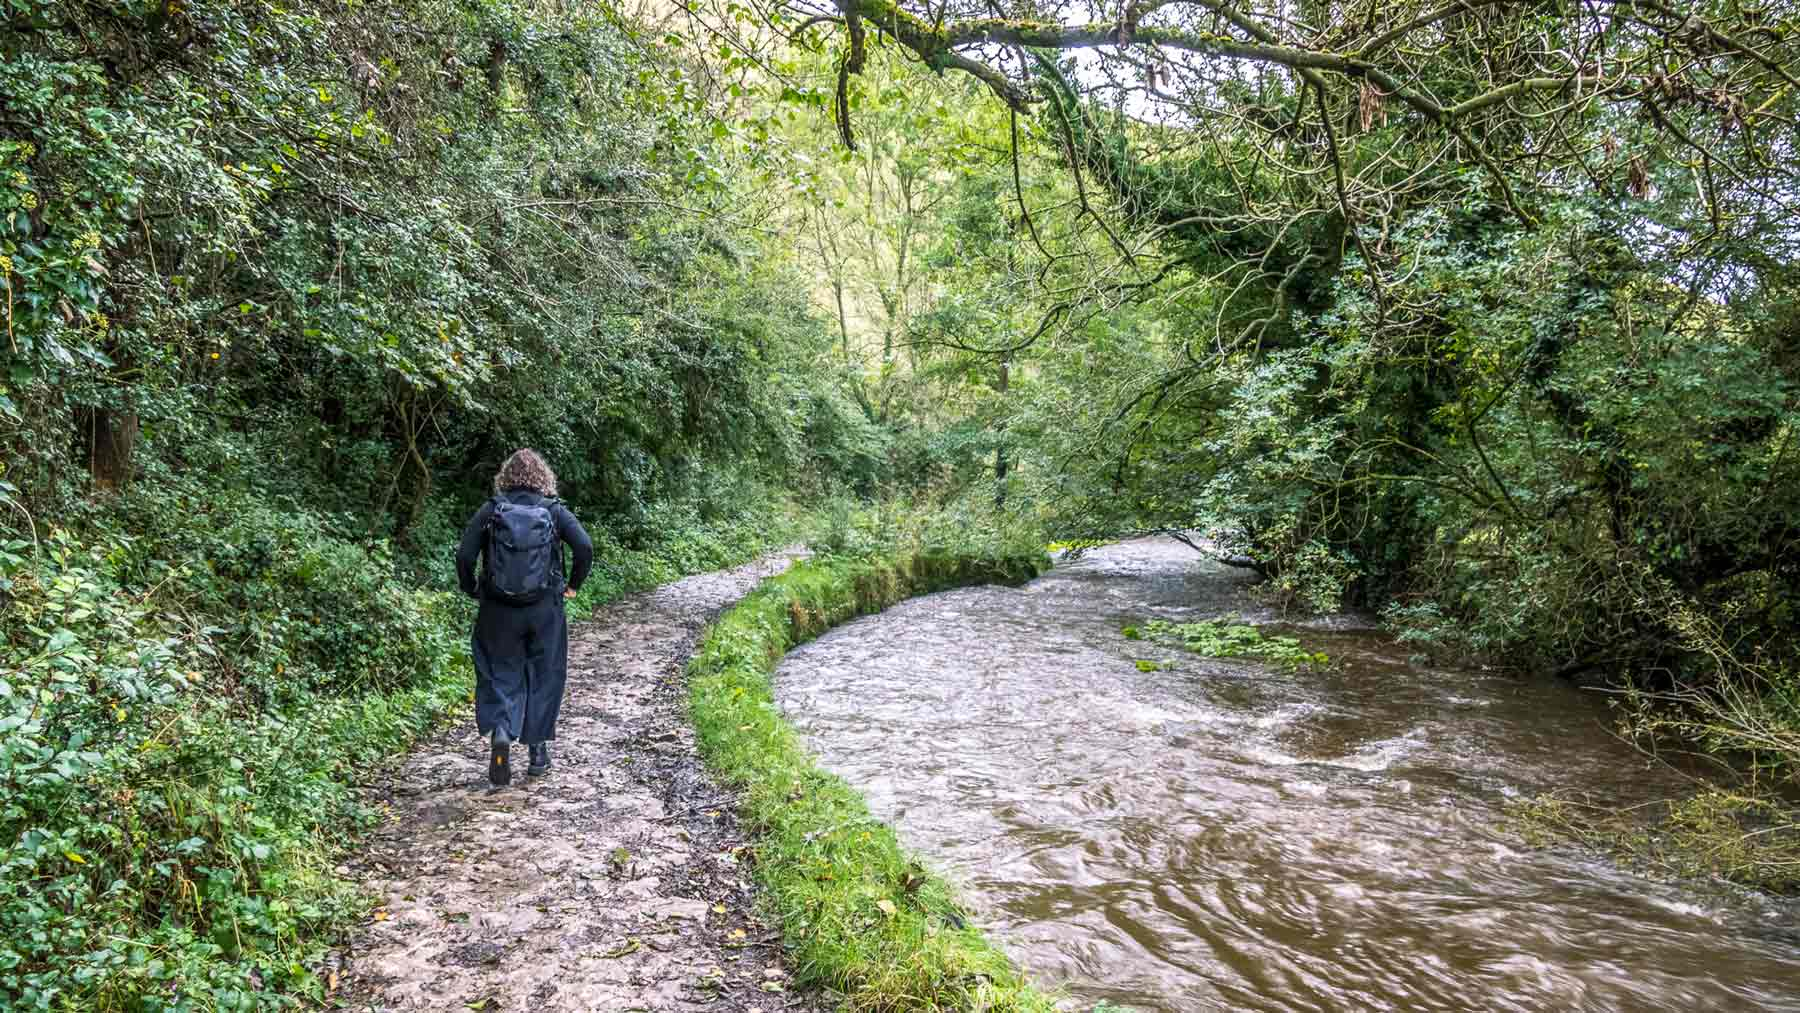 Clare, wearing Asmuss, walking alongside the River Dove